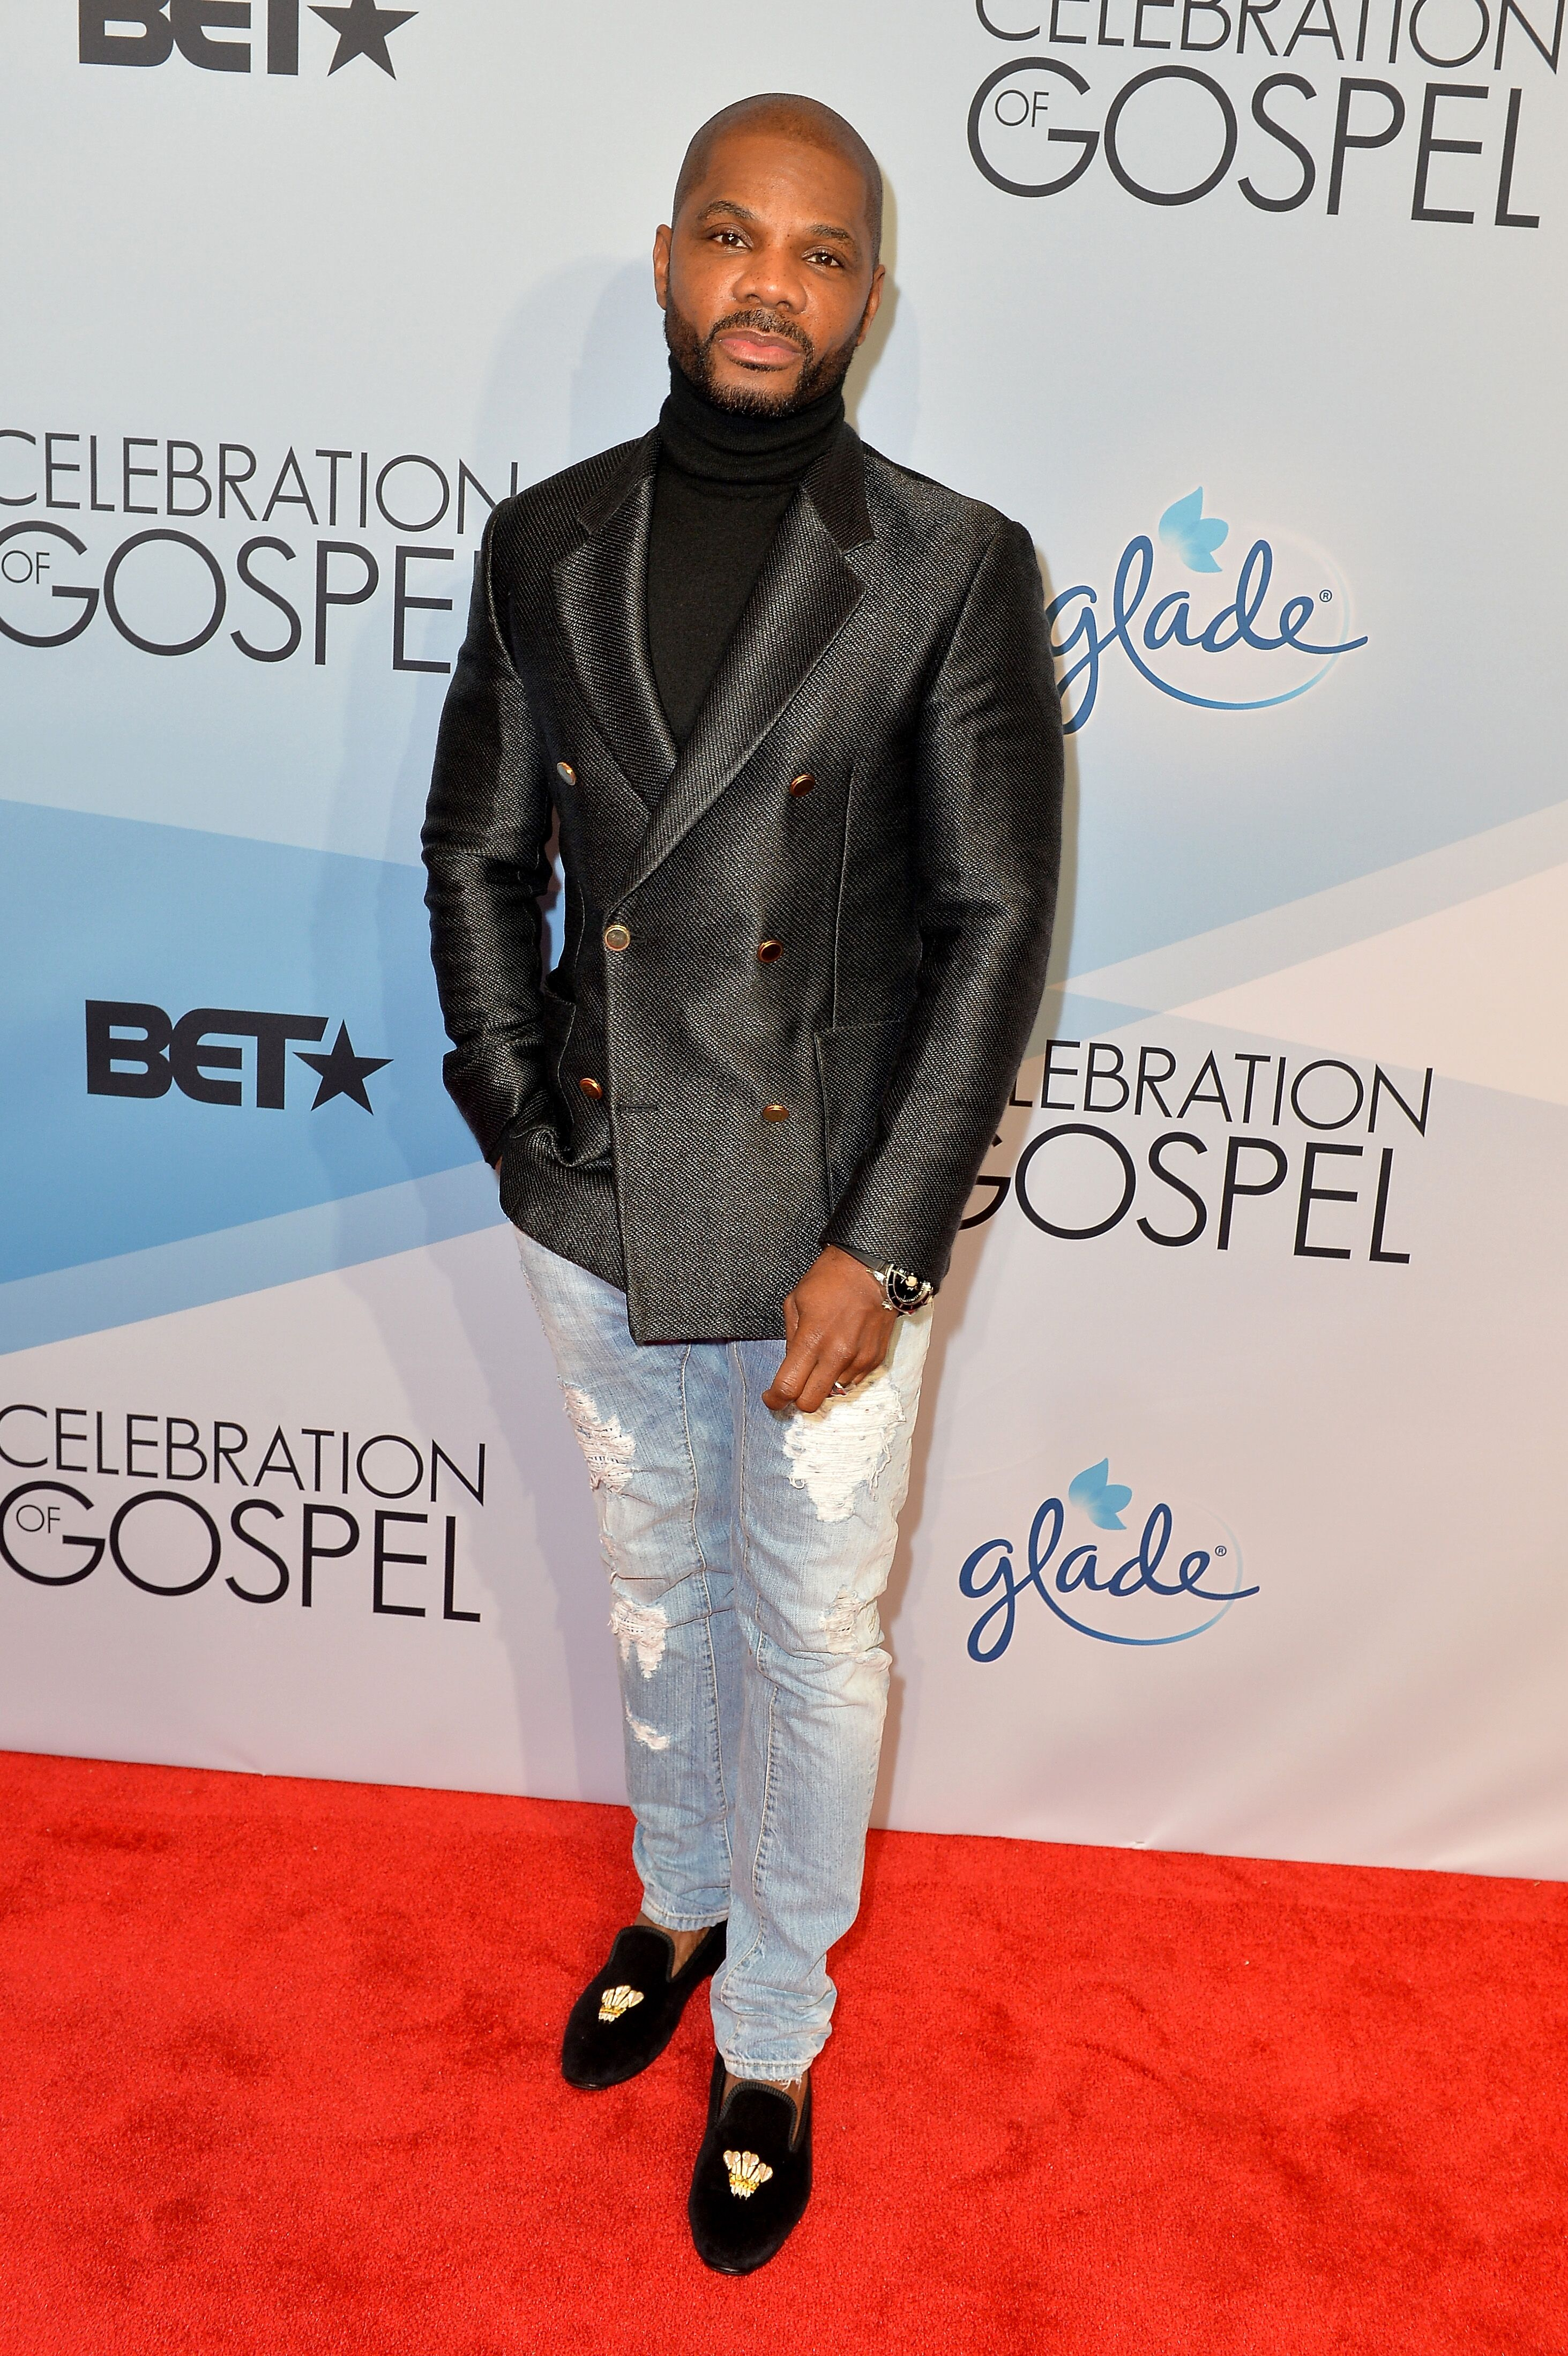 Kirk Franklin attends BET Celebration Of Gospel at Orpheum Theatre on January 9, 2016 in Los Angeles, California | Photo: Getty Images